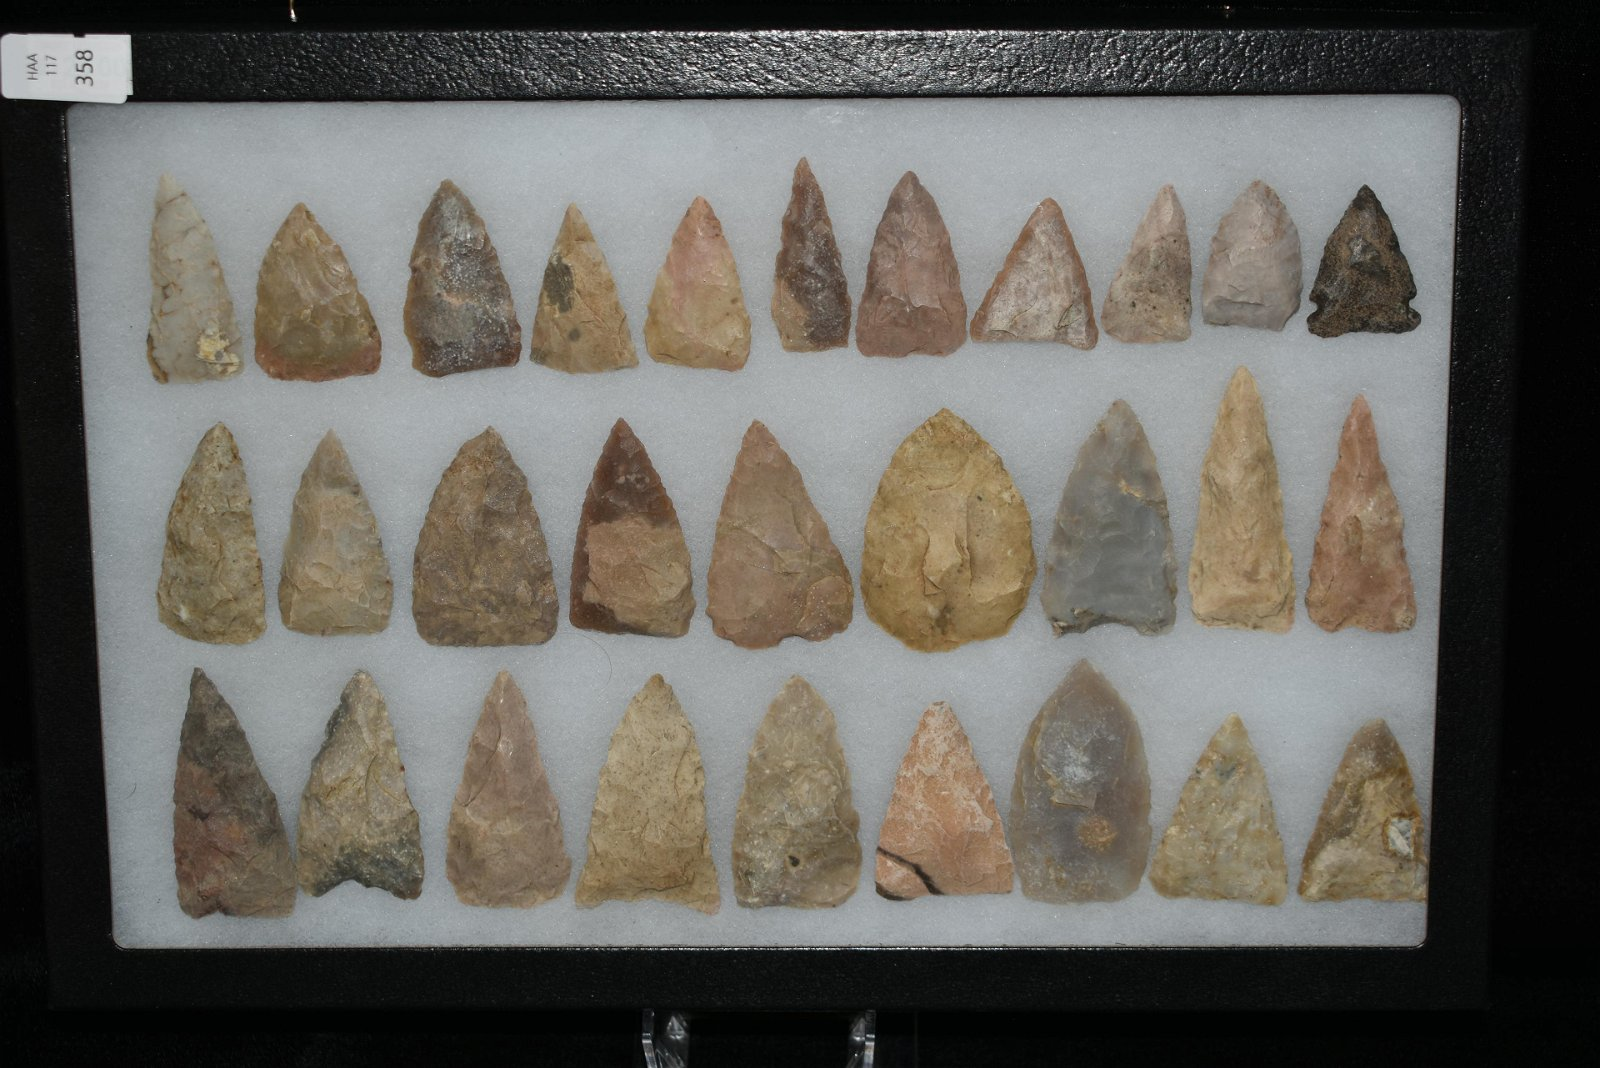 Frame Containing 29 Woodland/Archaic Points found in